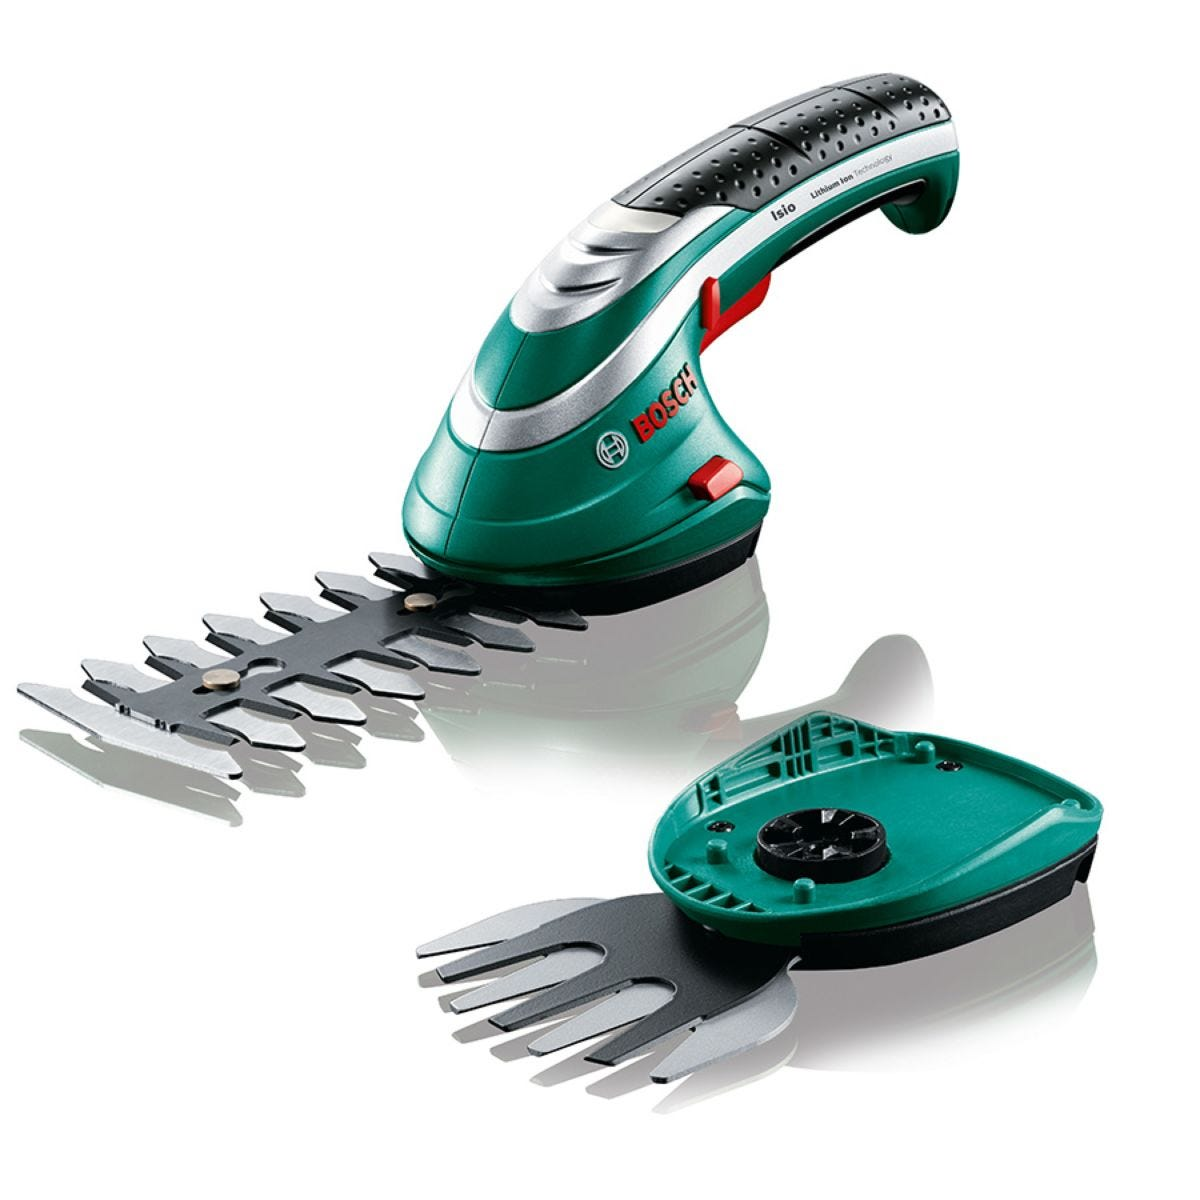 Bosch ISIO Cordless Shape & Edge Hedge Trimmer